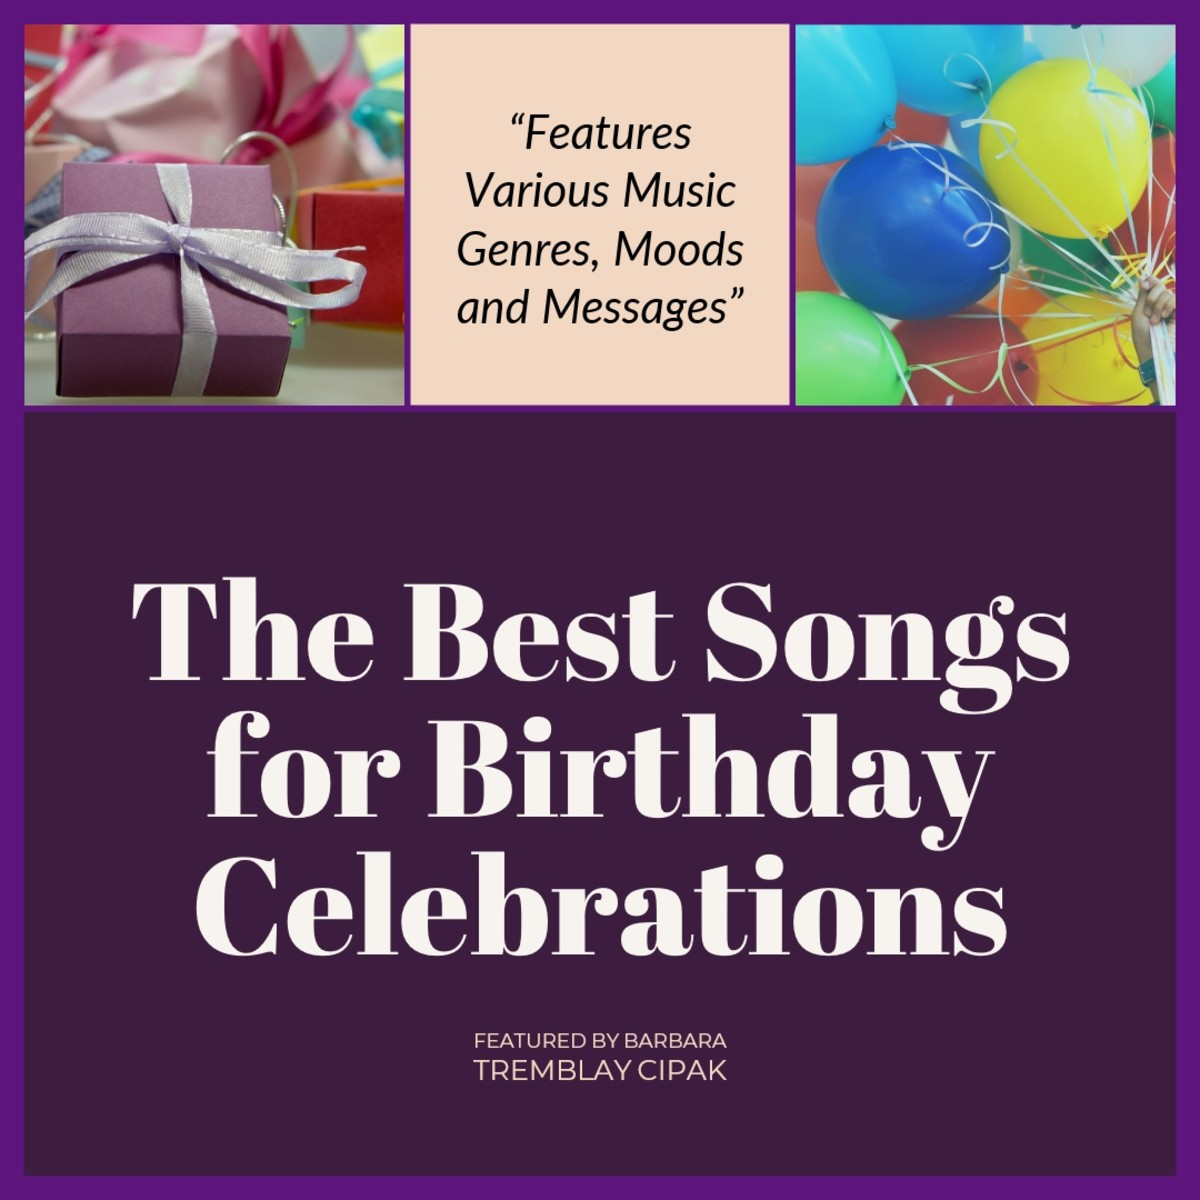 The Best Songs for Birthdays